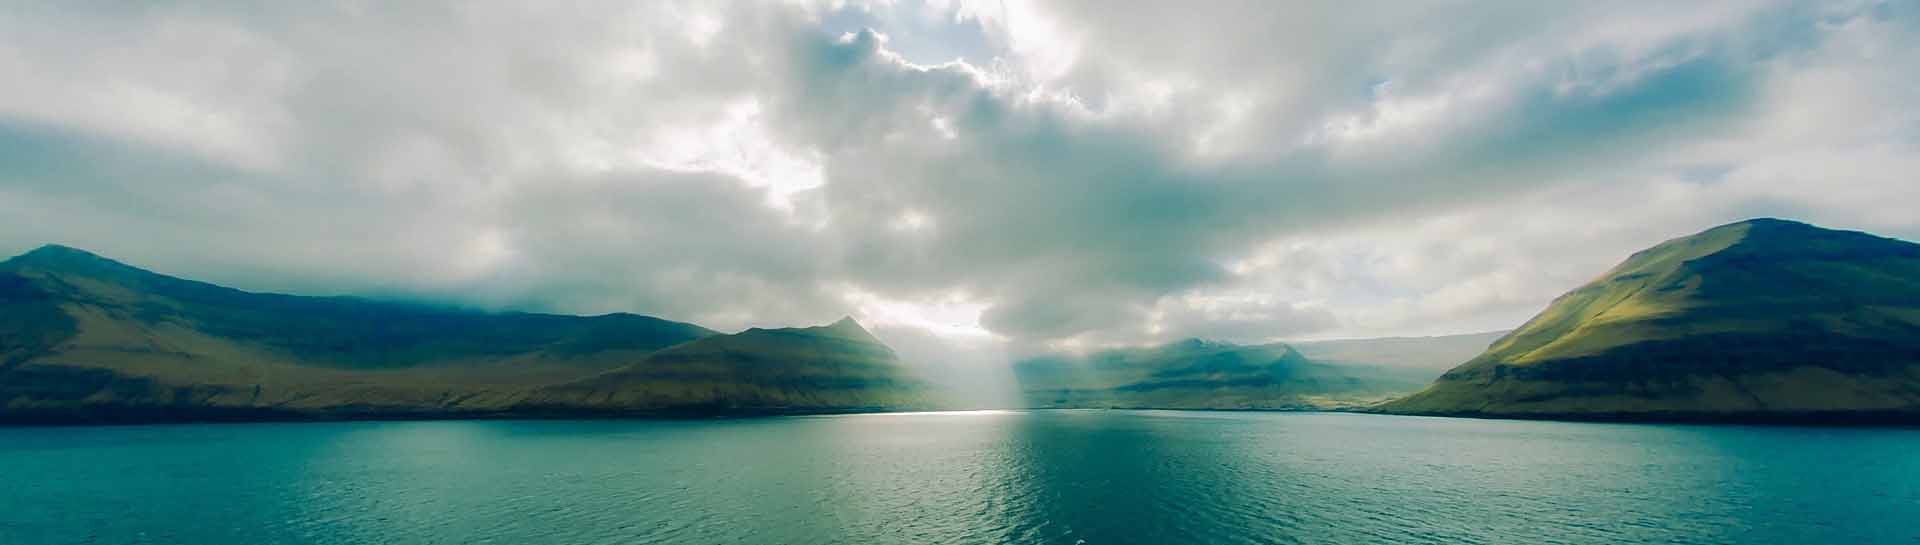 """Inspirational People – For Inspirational Times: Leif Erikson - The Faroe Islands - """"Hey Naddod, should've listened to your sat nav - this is what you could have found""""..."""